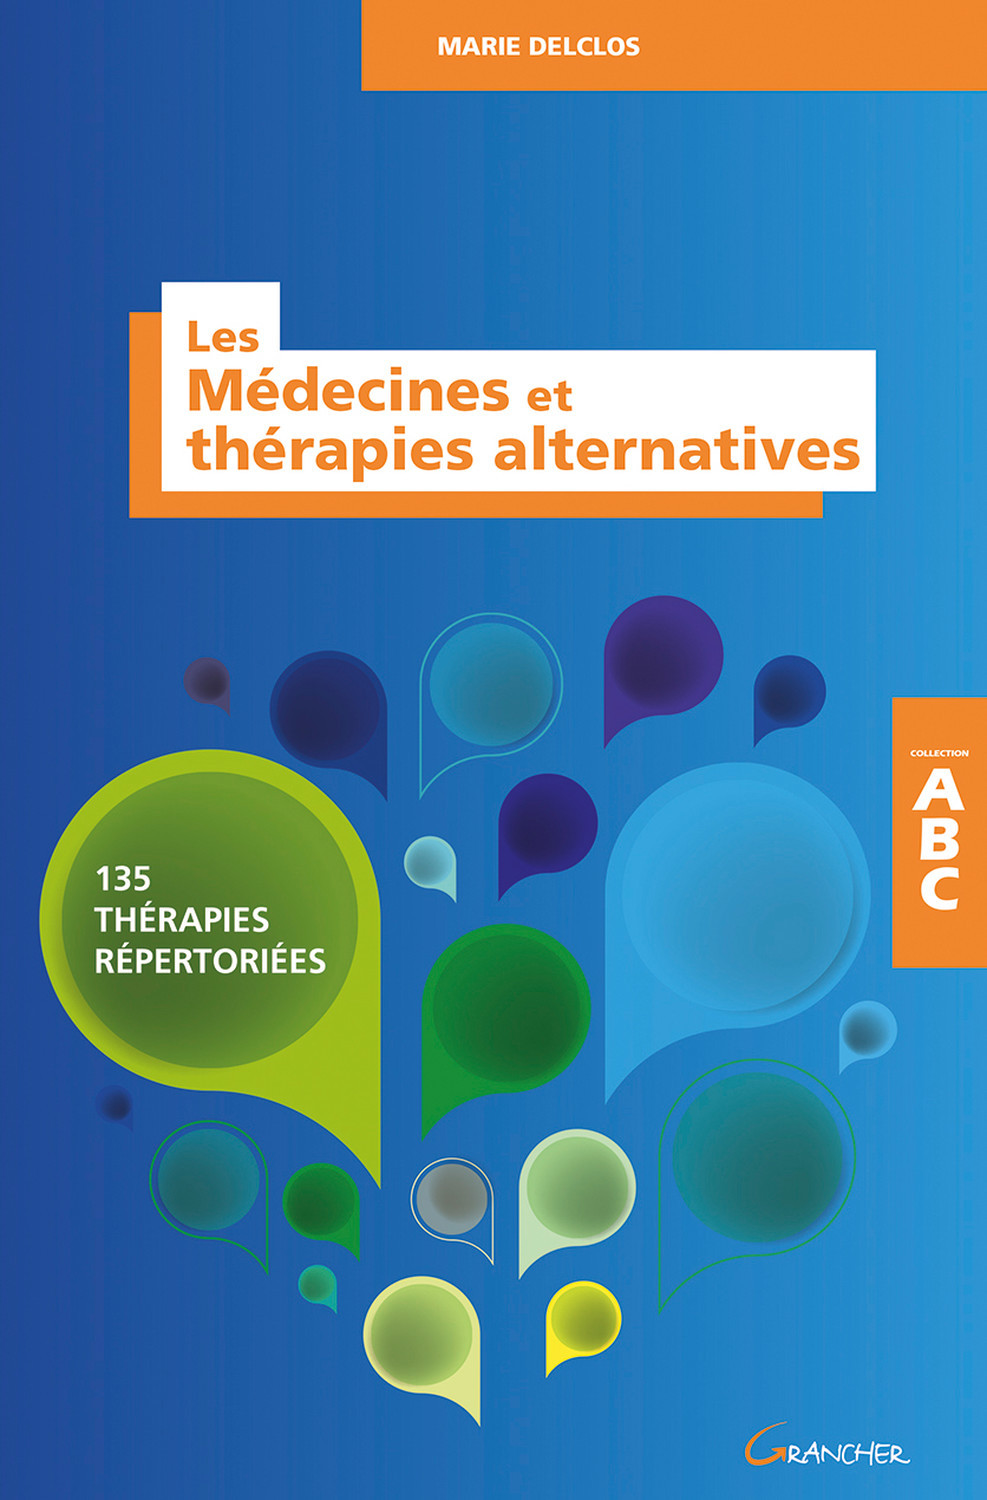 LES MEDECINES ET THERAPIES ALTERNATIVES - 135 THERAPIES REPERTORIEES - ABC